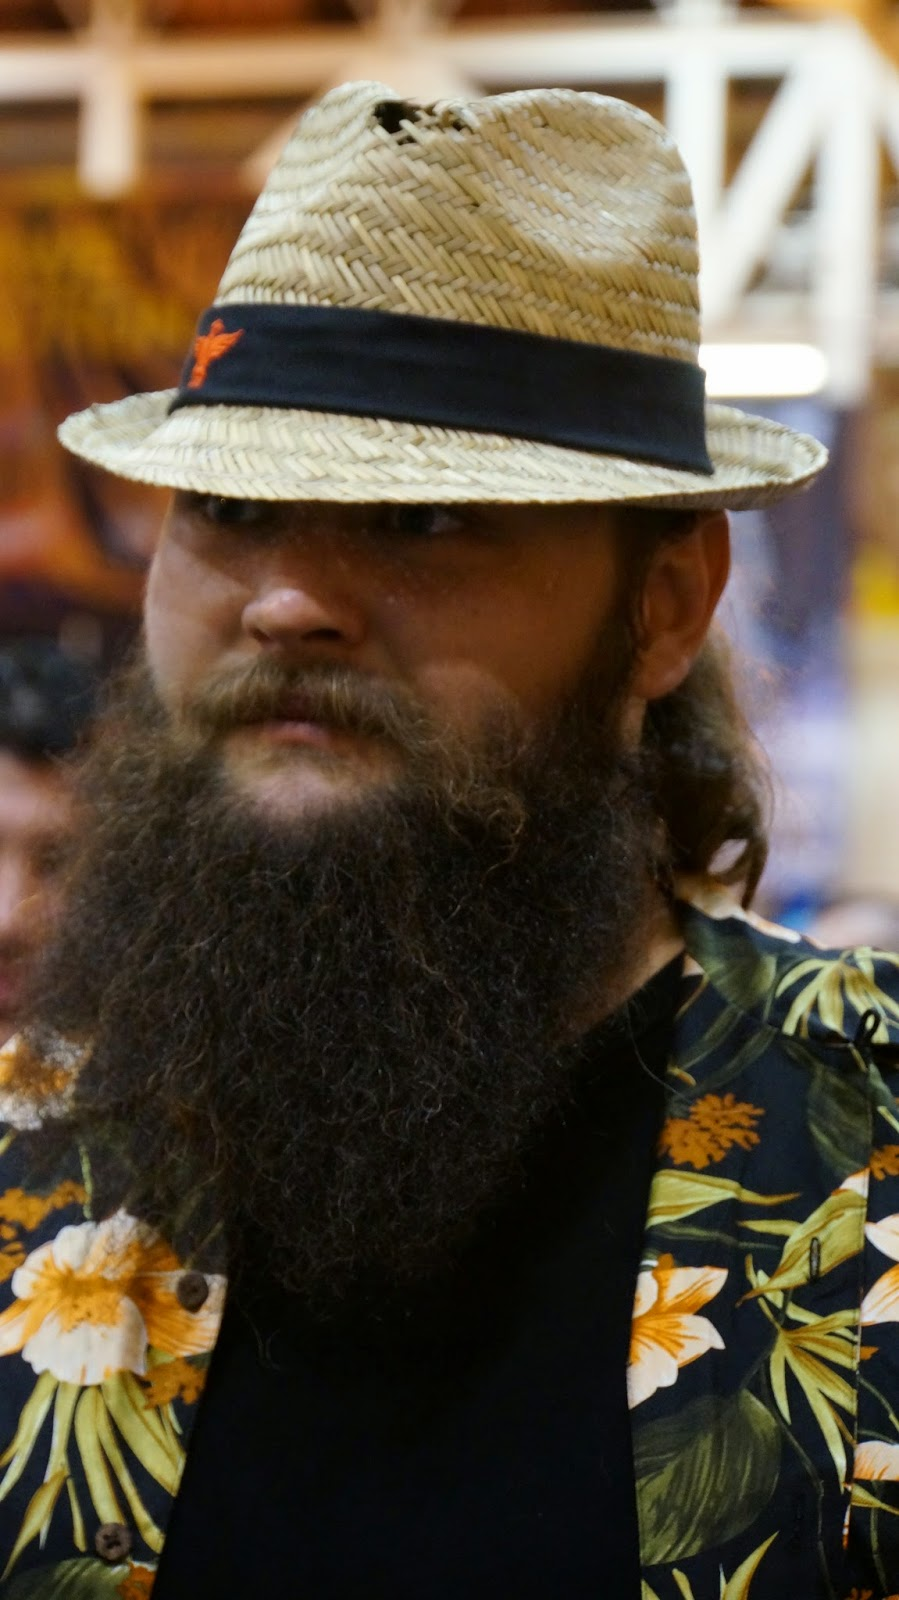 Beard-Fedora-Patterned-Shirt